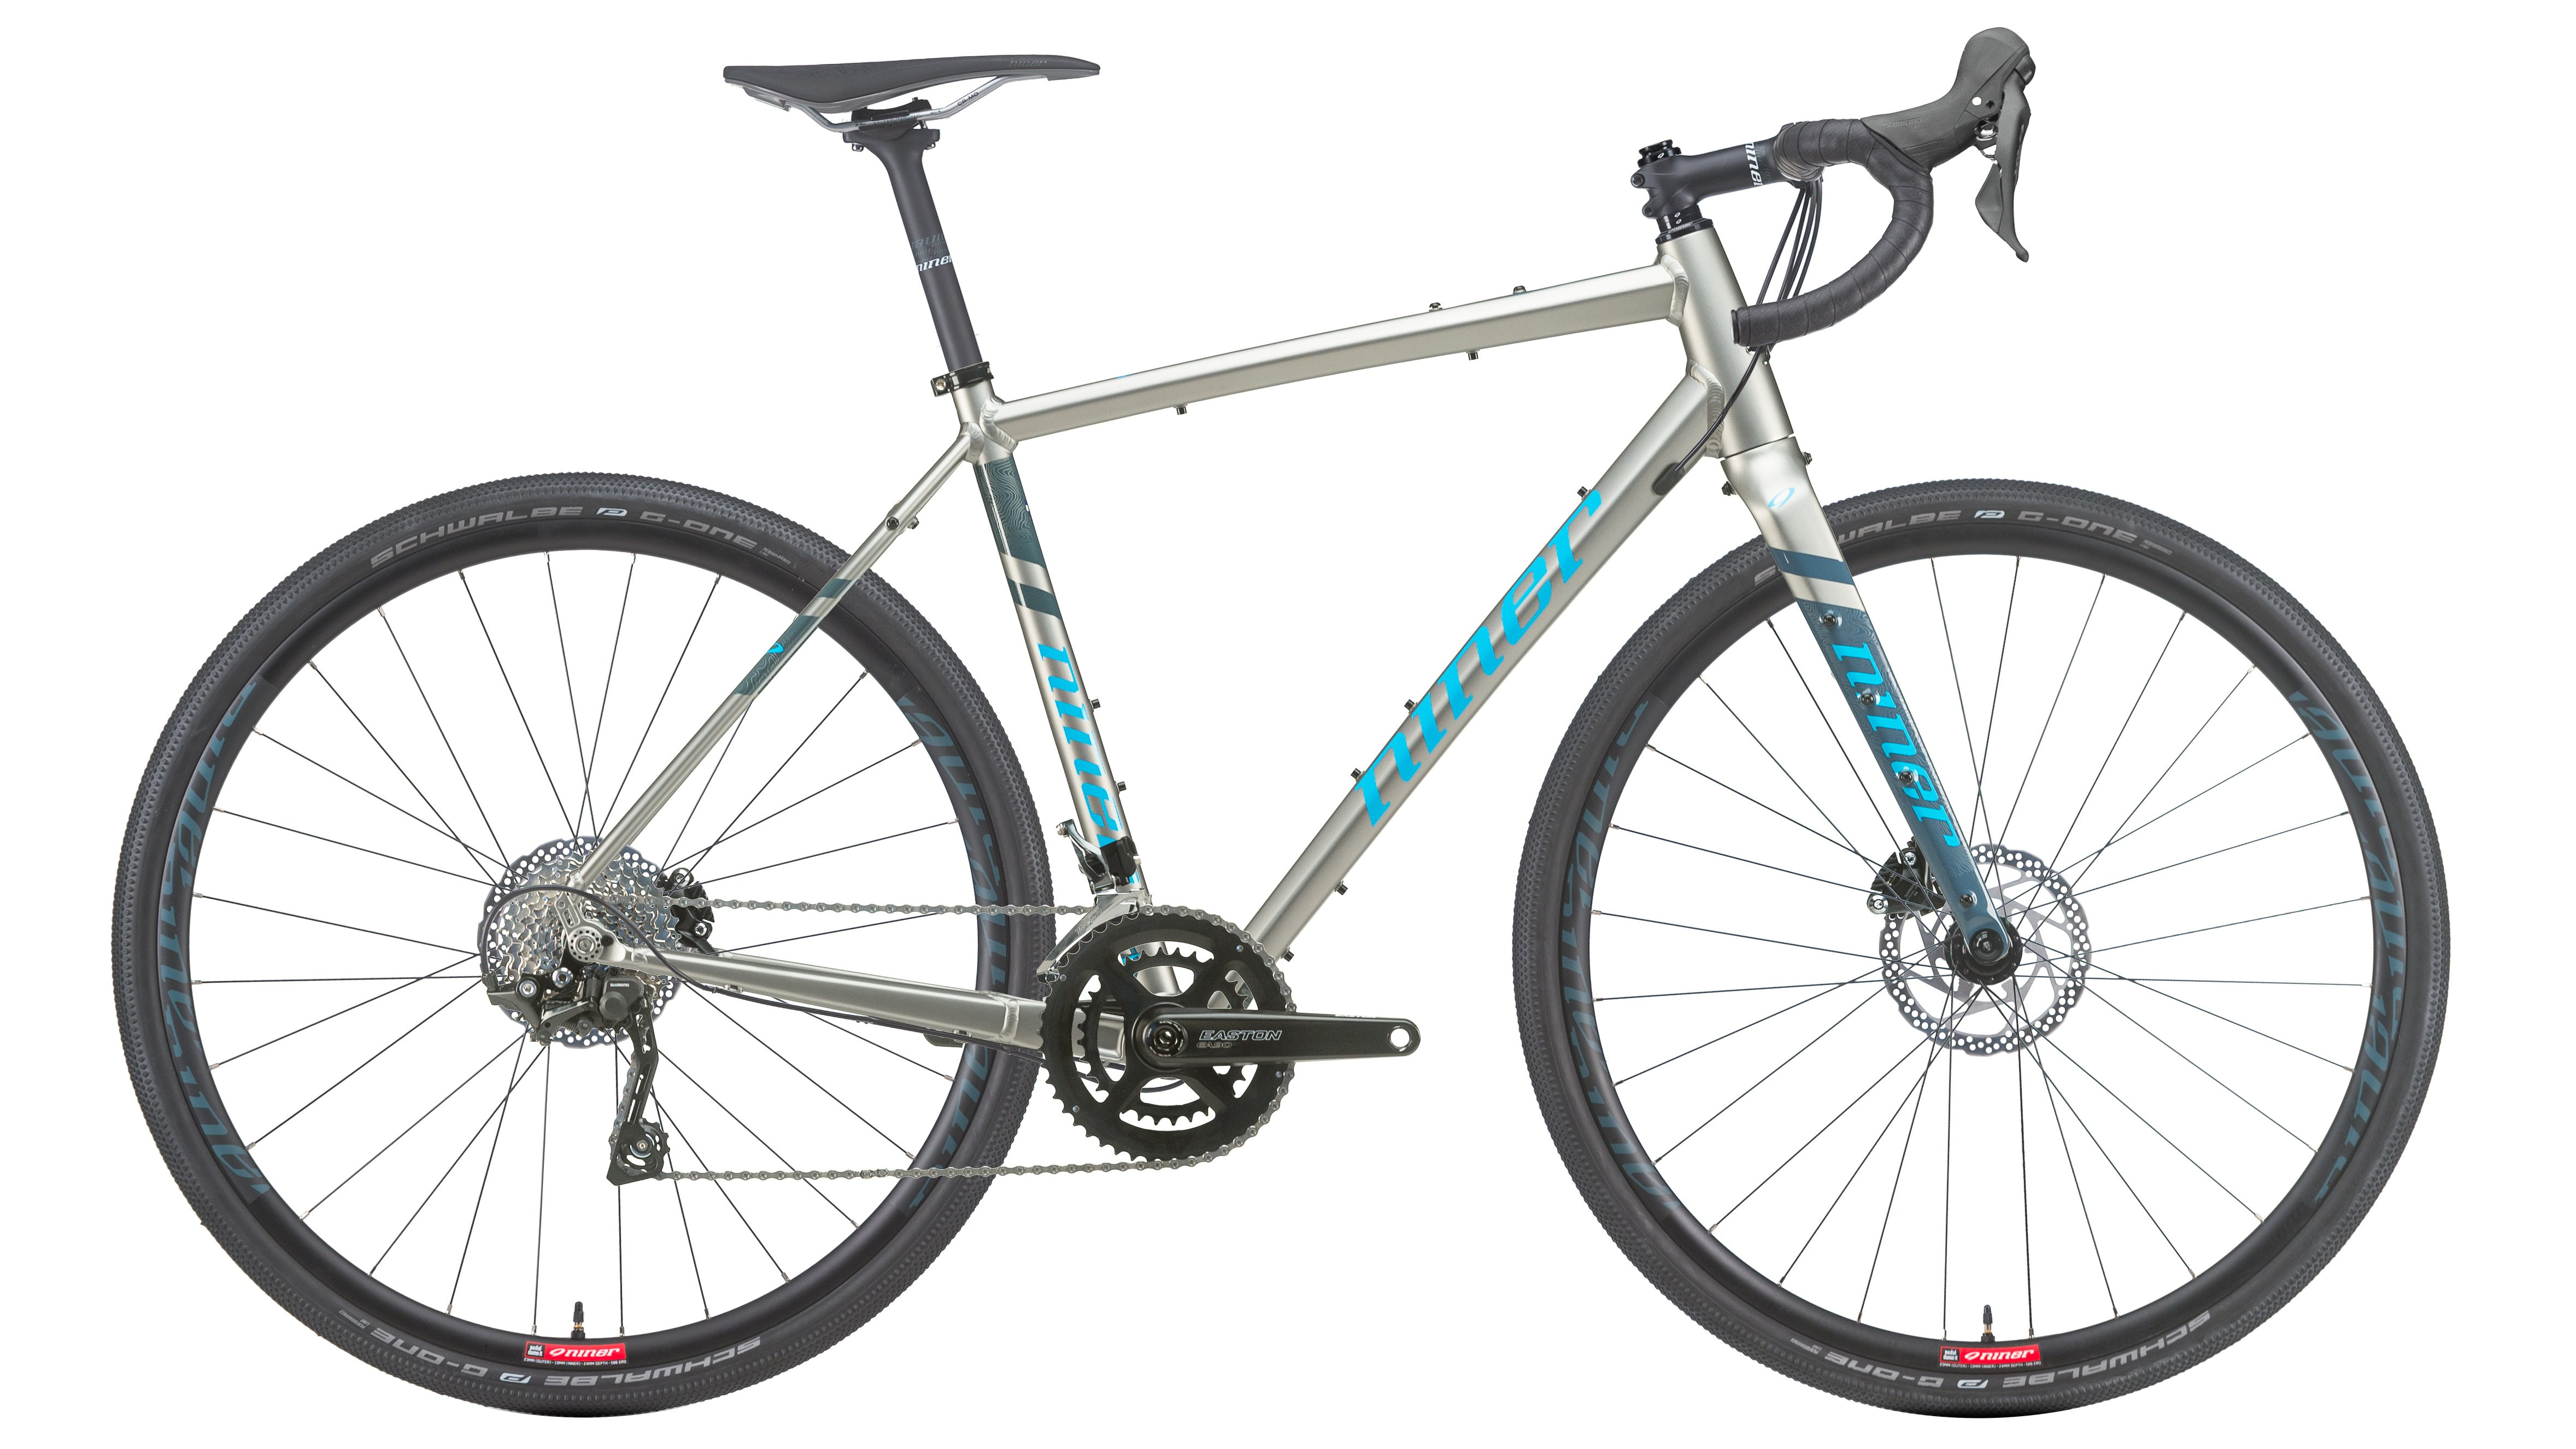 Niner RLT 9 as a touring bike